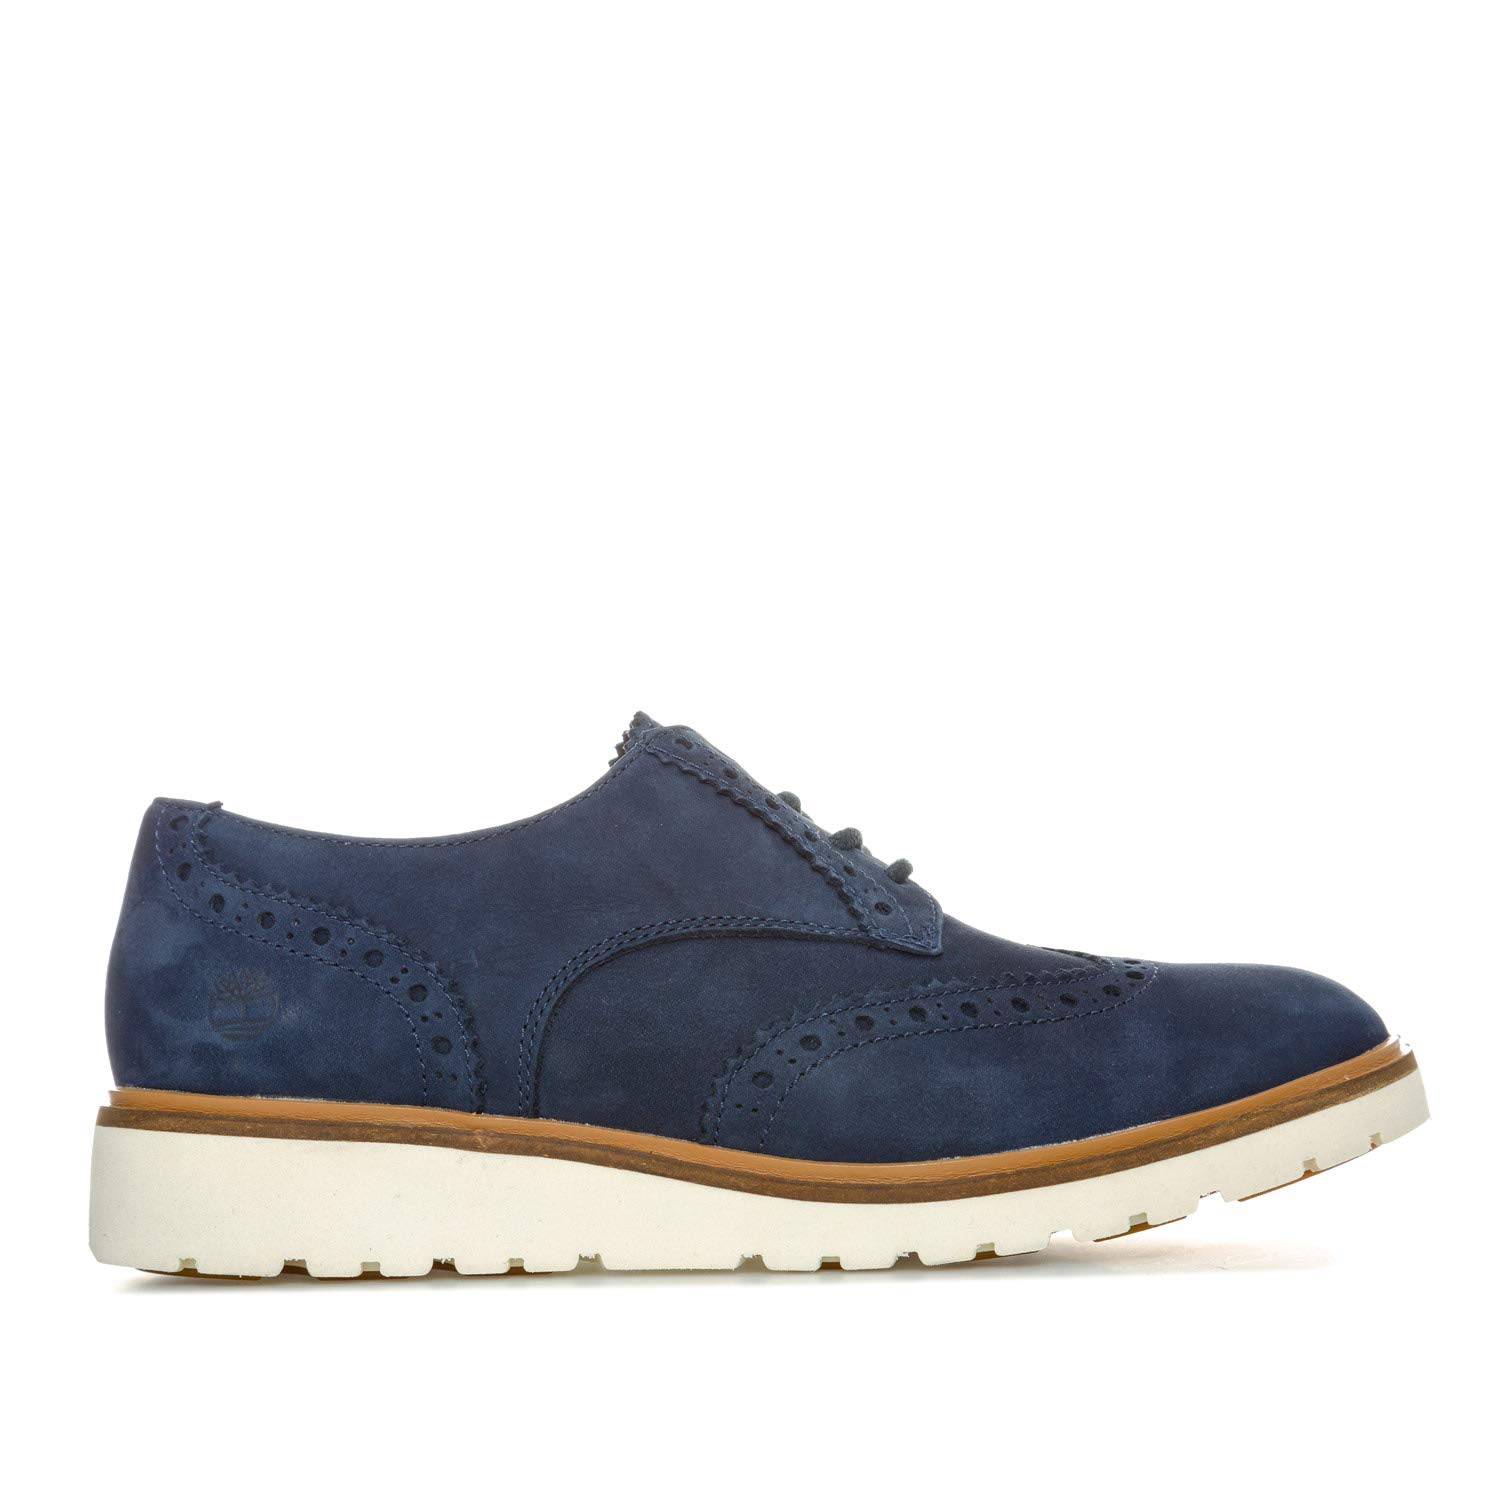 price reduced another chance hot product Timberland Womens Ellis Street Brogue Oxford Shoes in Total ...